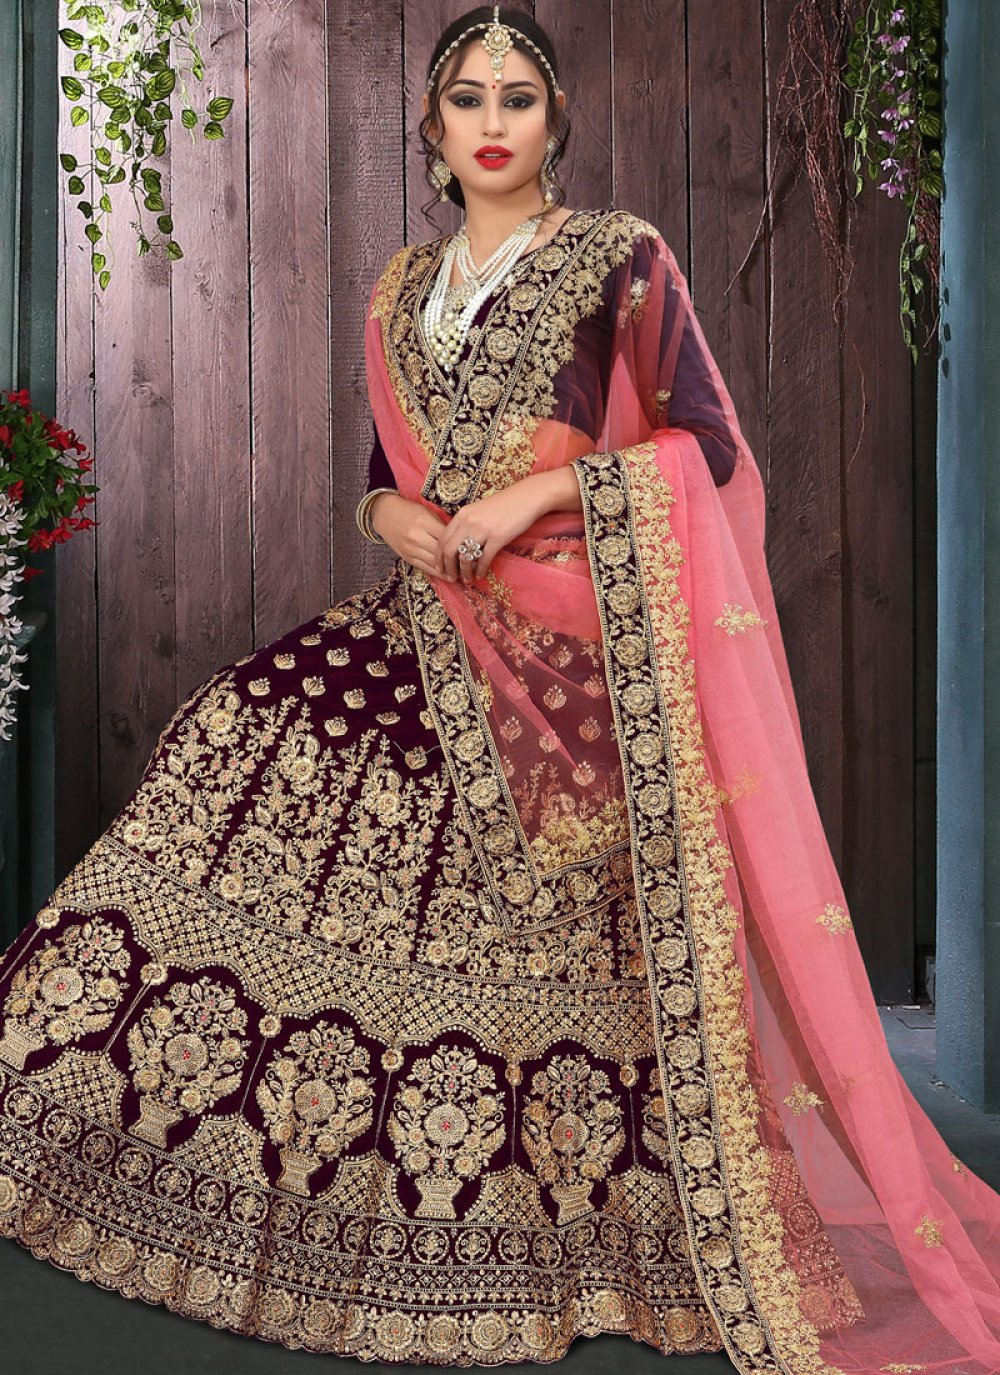 Velvet Designer Lehenga Choli in Wine